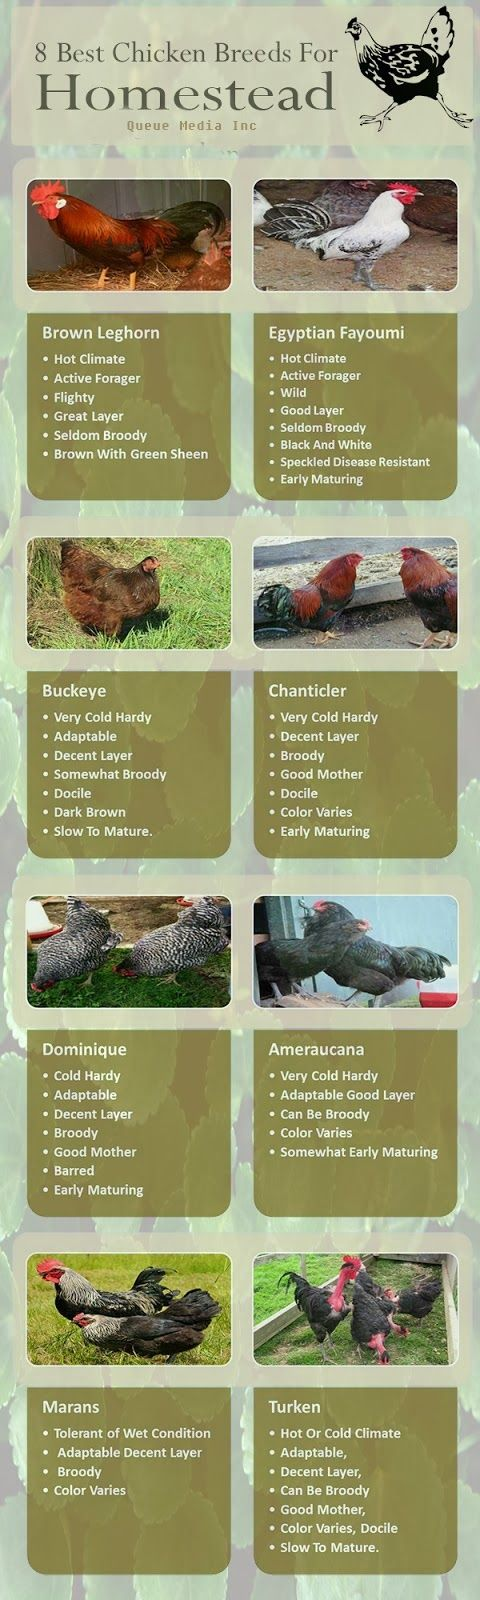 8 Best Chicken Breeds for Homestead #poultry